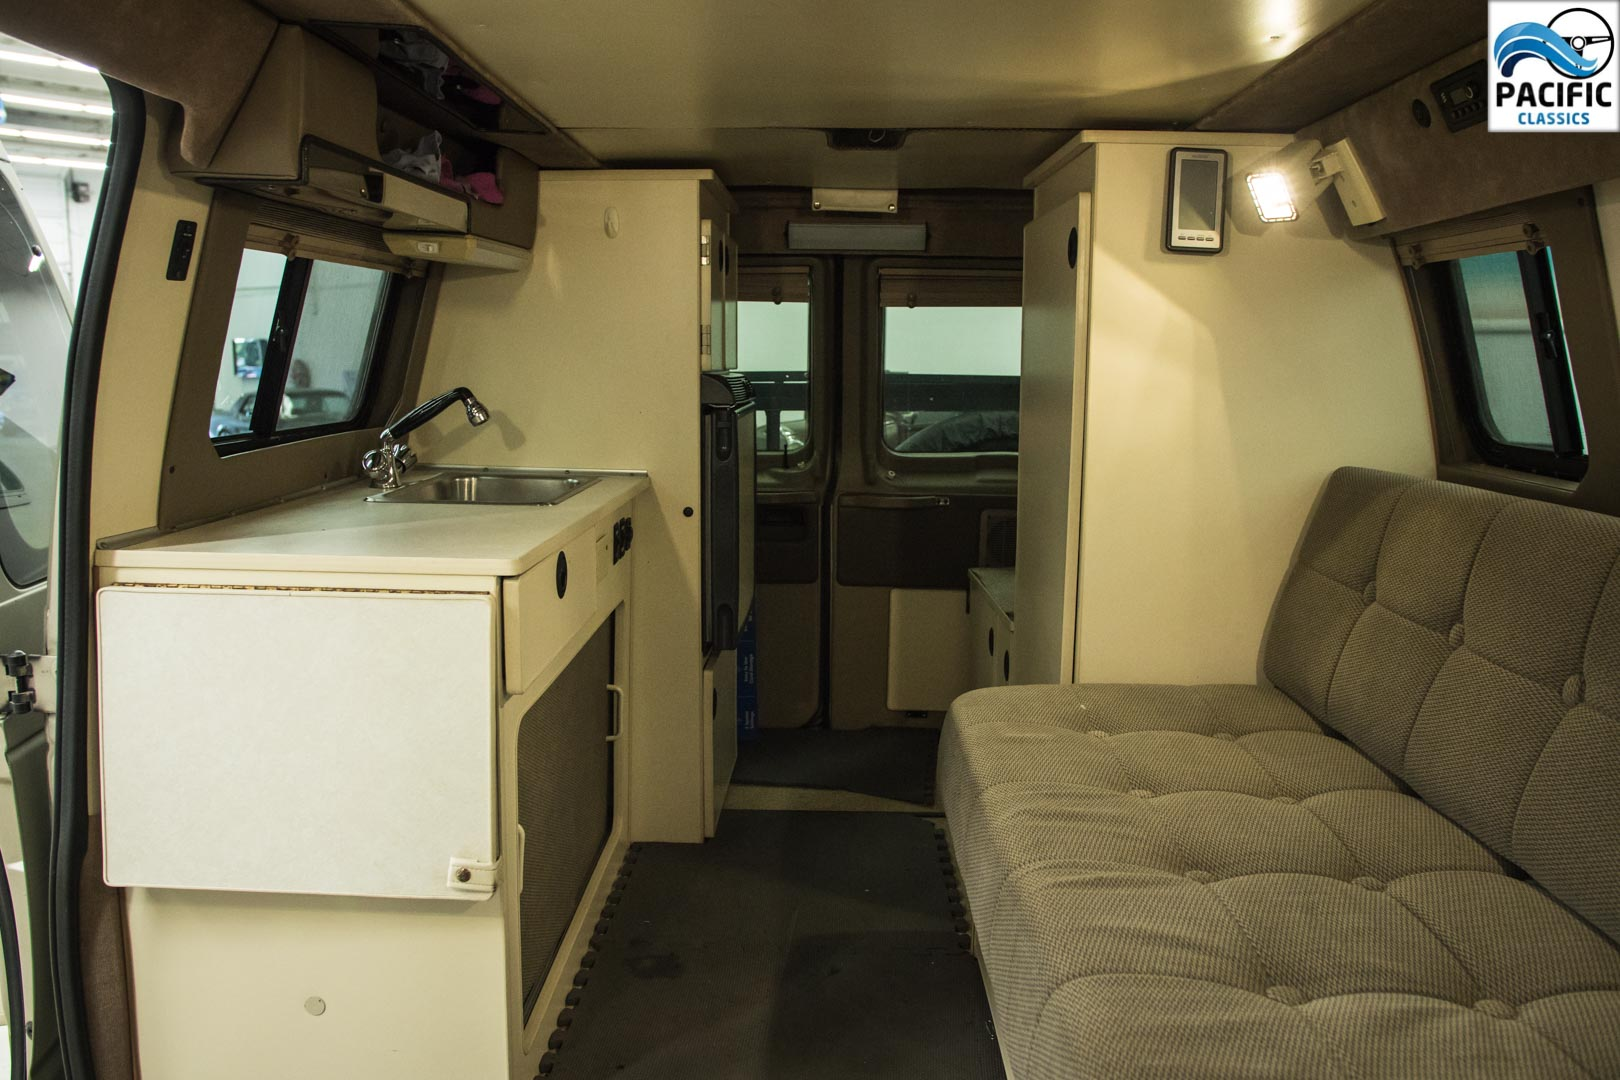 2007 Ford E350 Sportsmobile Camper Van